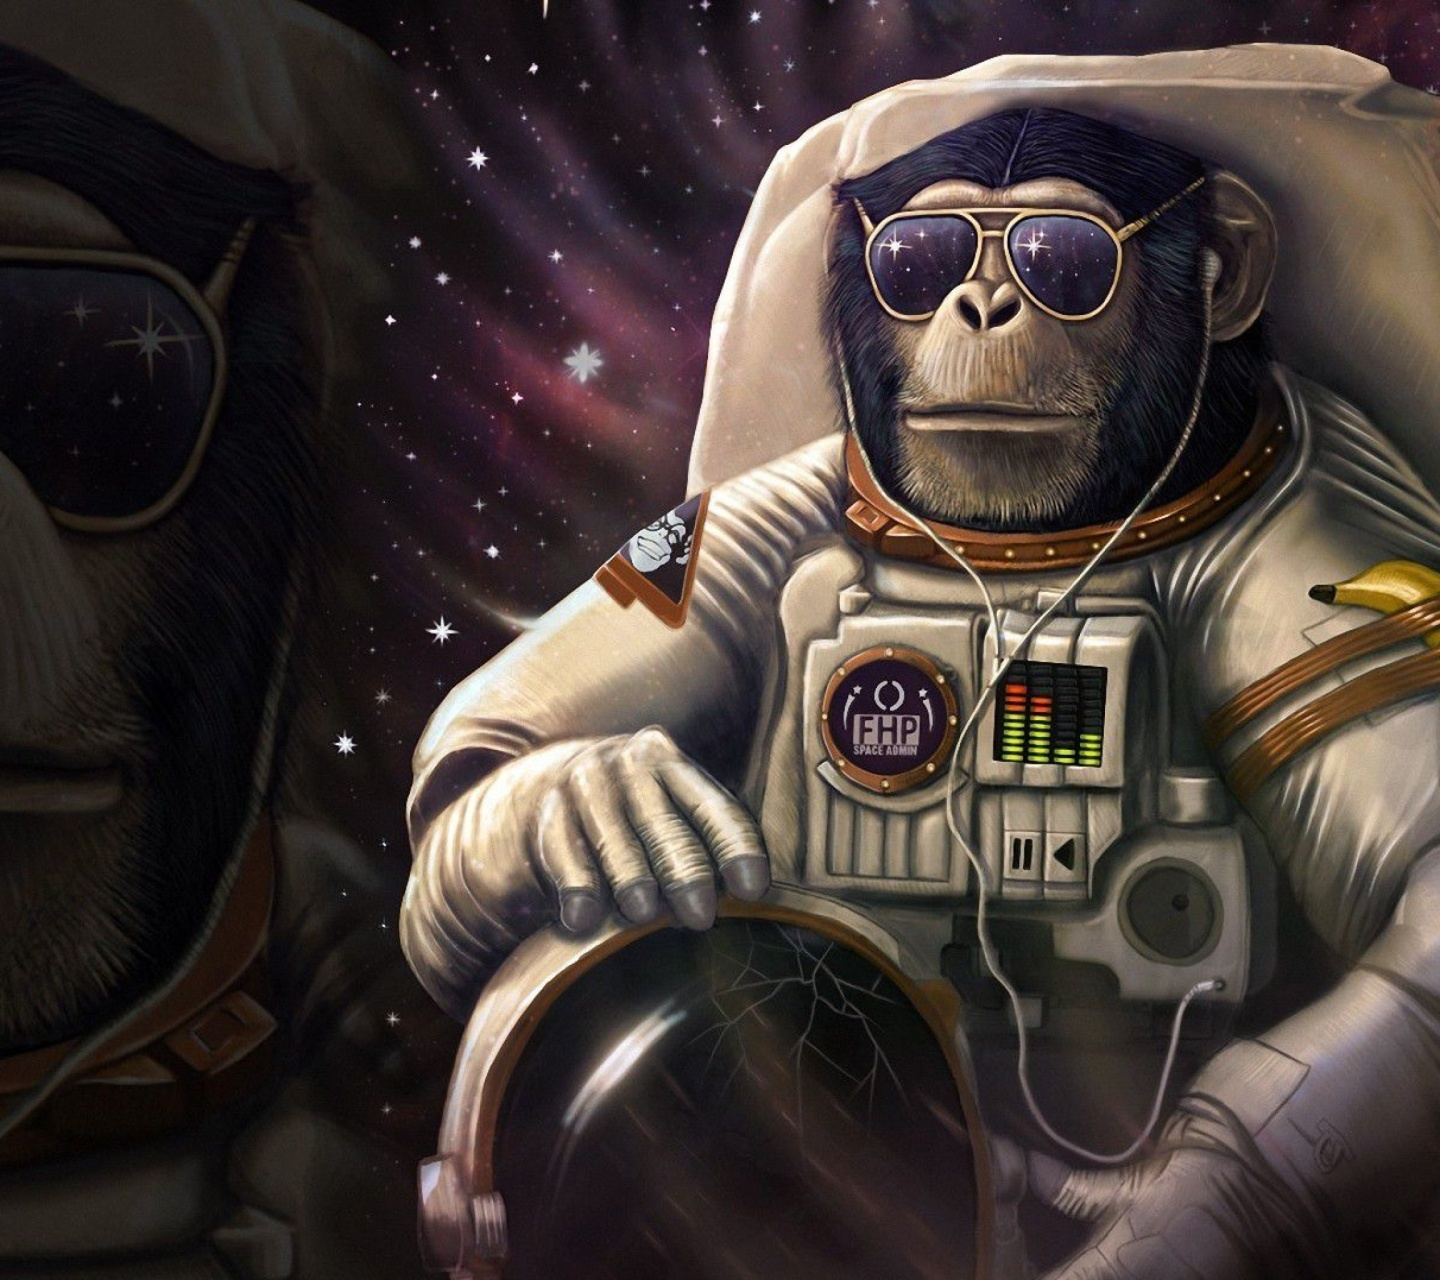 Monkeys and apes in space screenshot #1 1440x1280